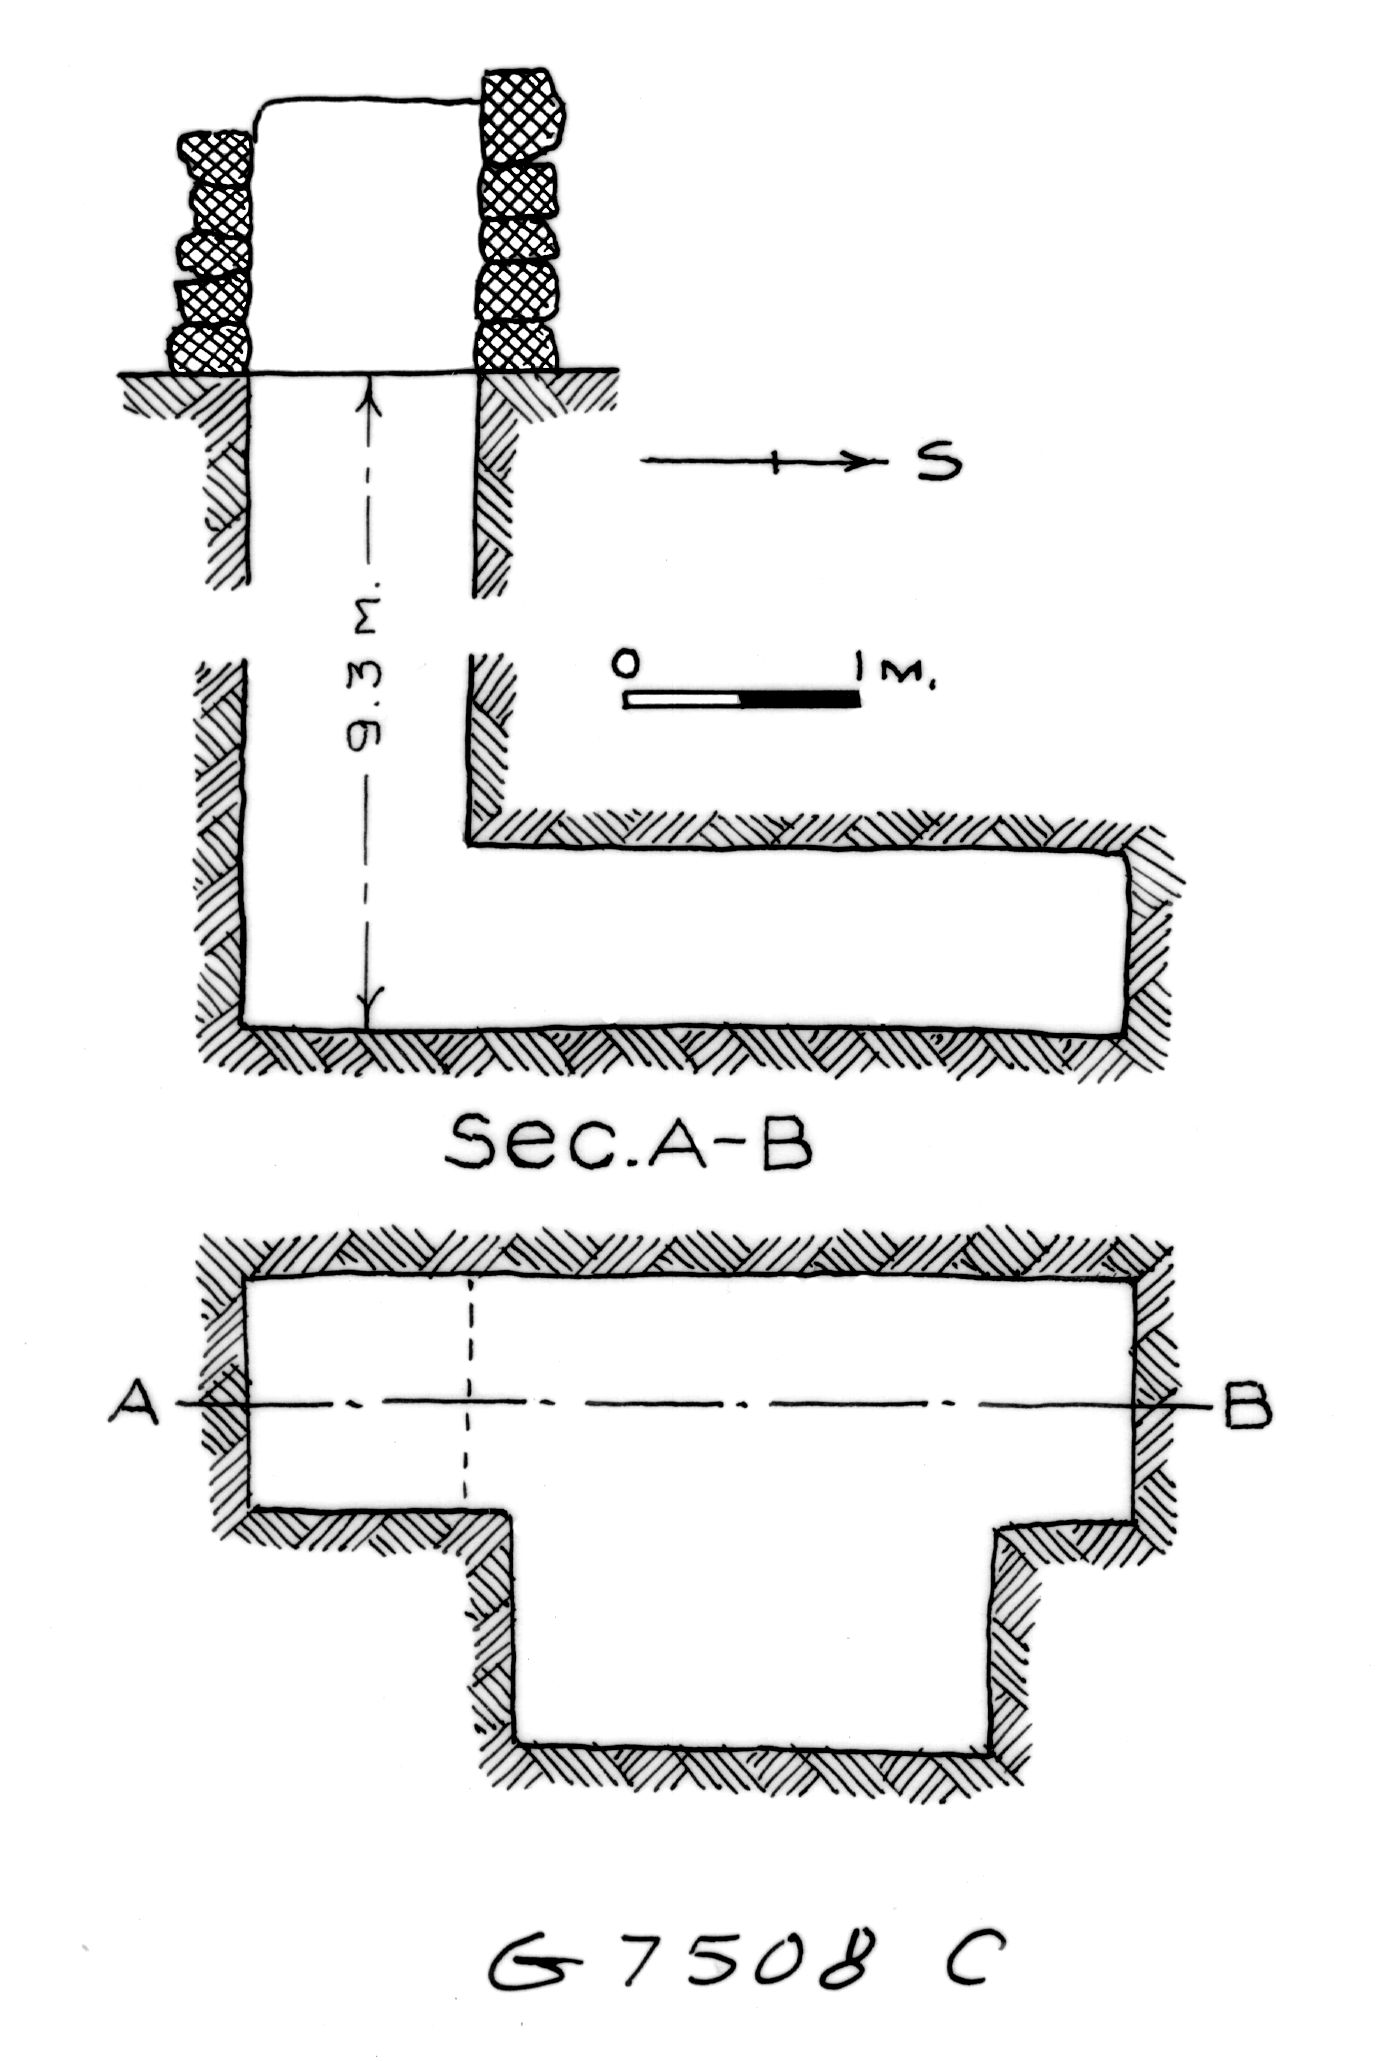 Maps and plans: G 7508, Shaft C